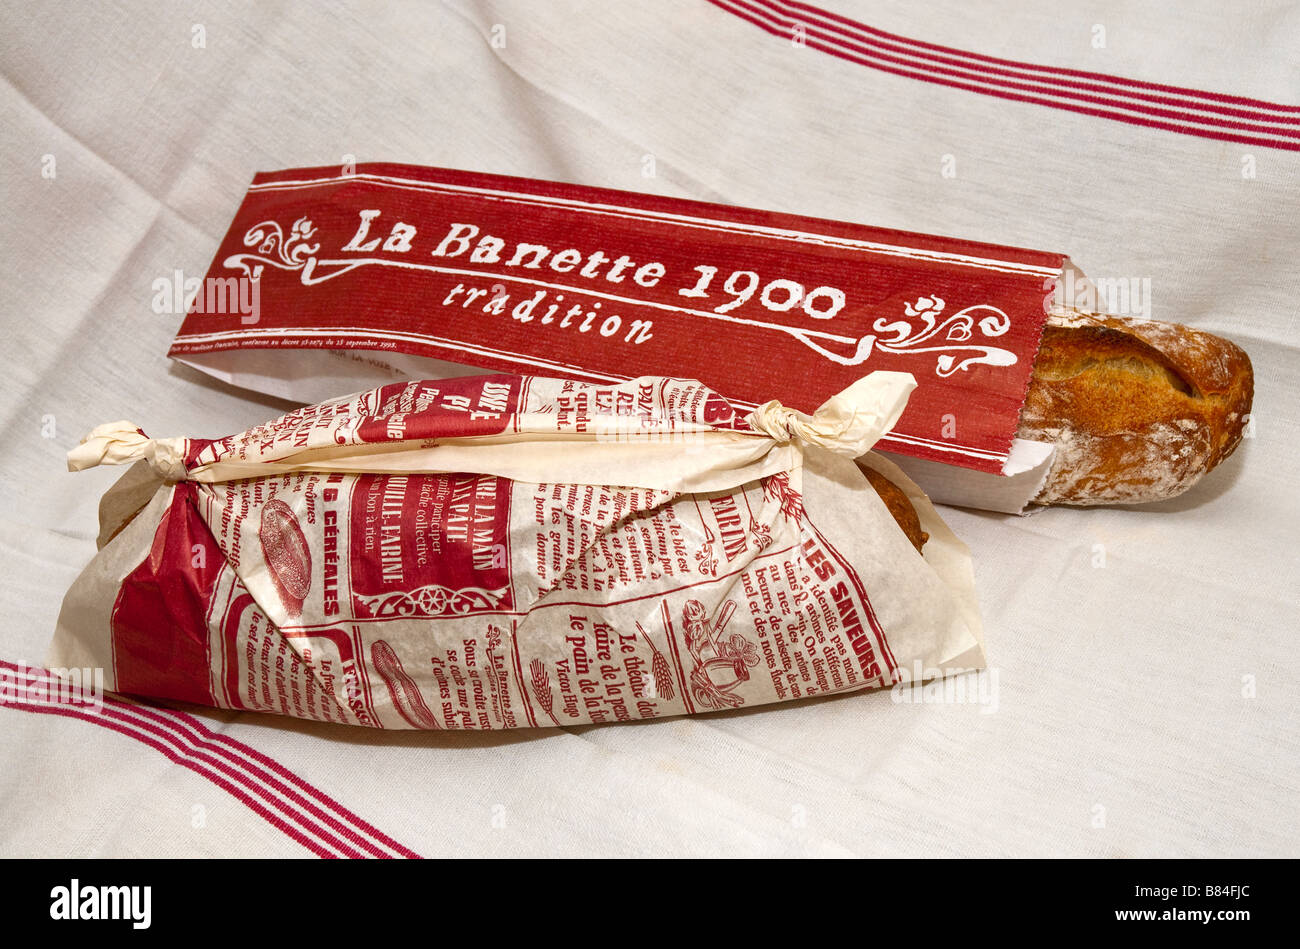 Banette Papier Complet Stock Photos And Complet Stock Images Alamy